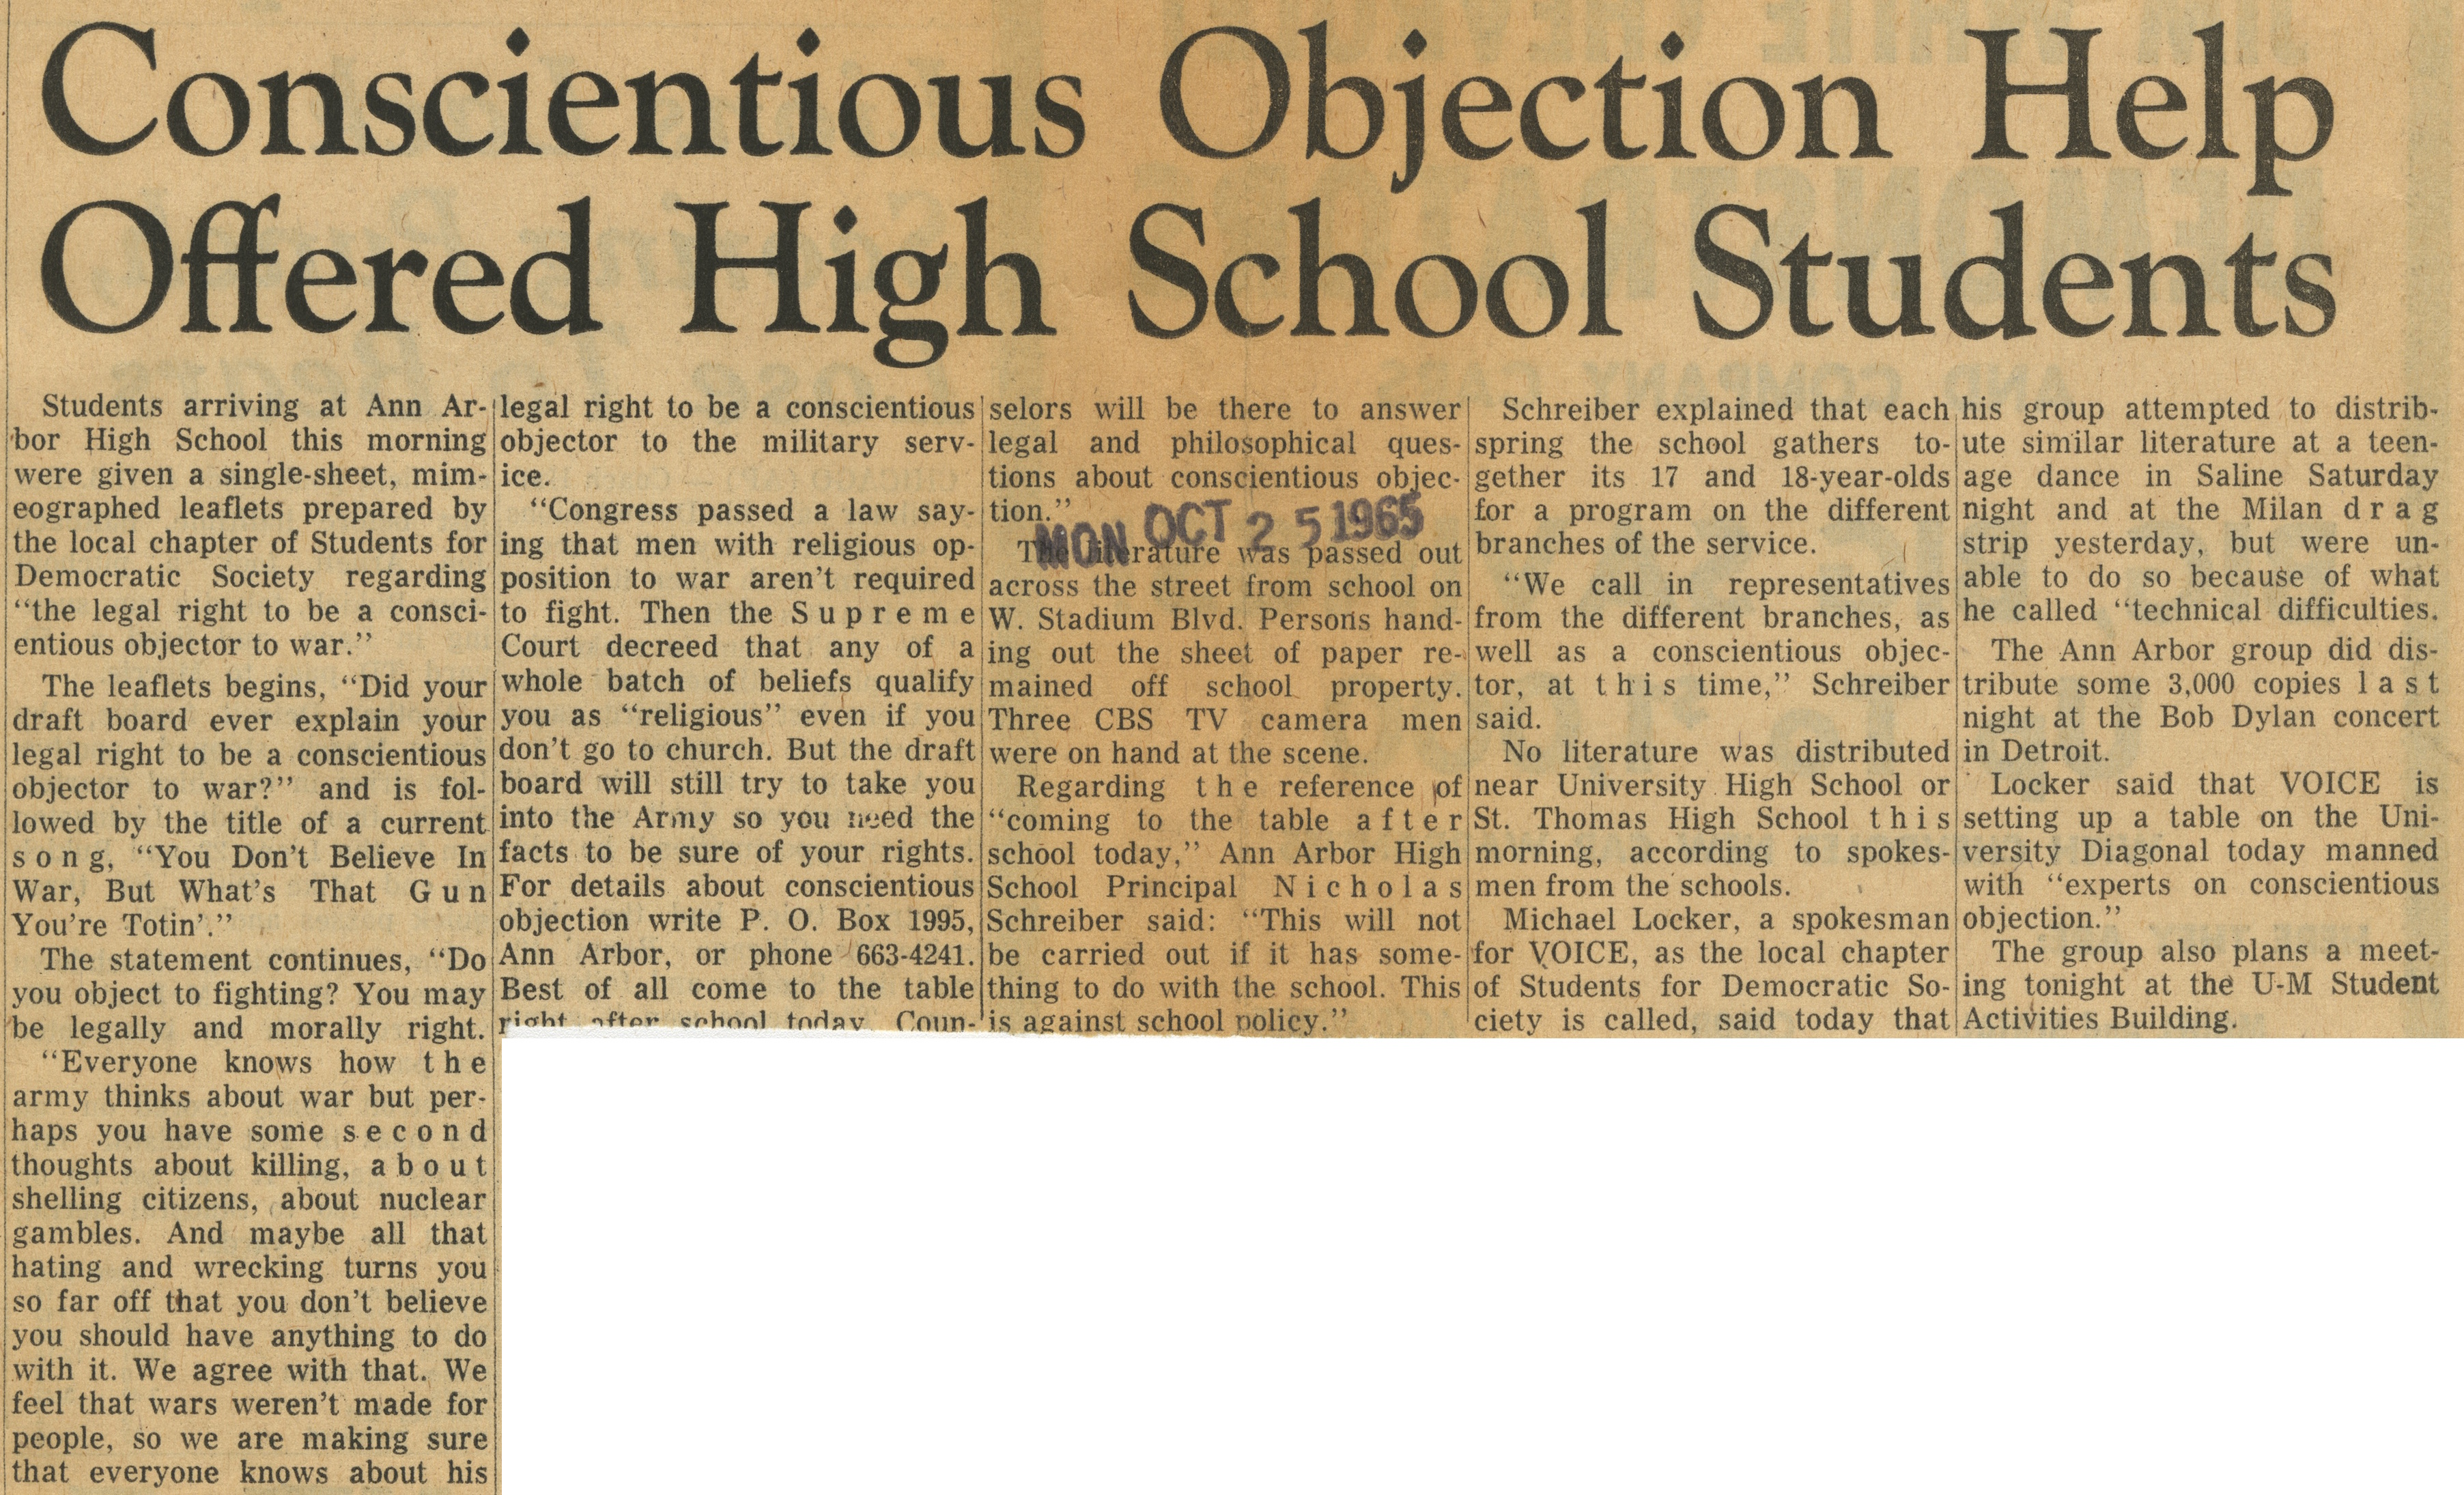 Conscientious Objection Help Offered High School Students image